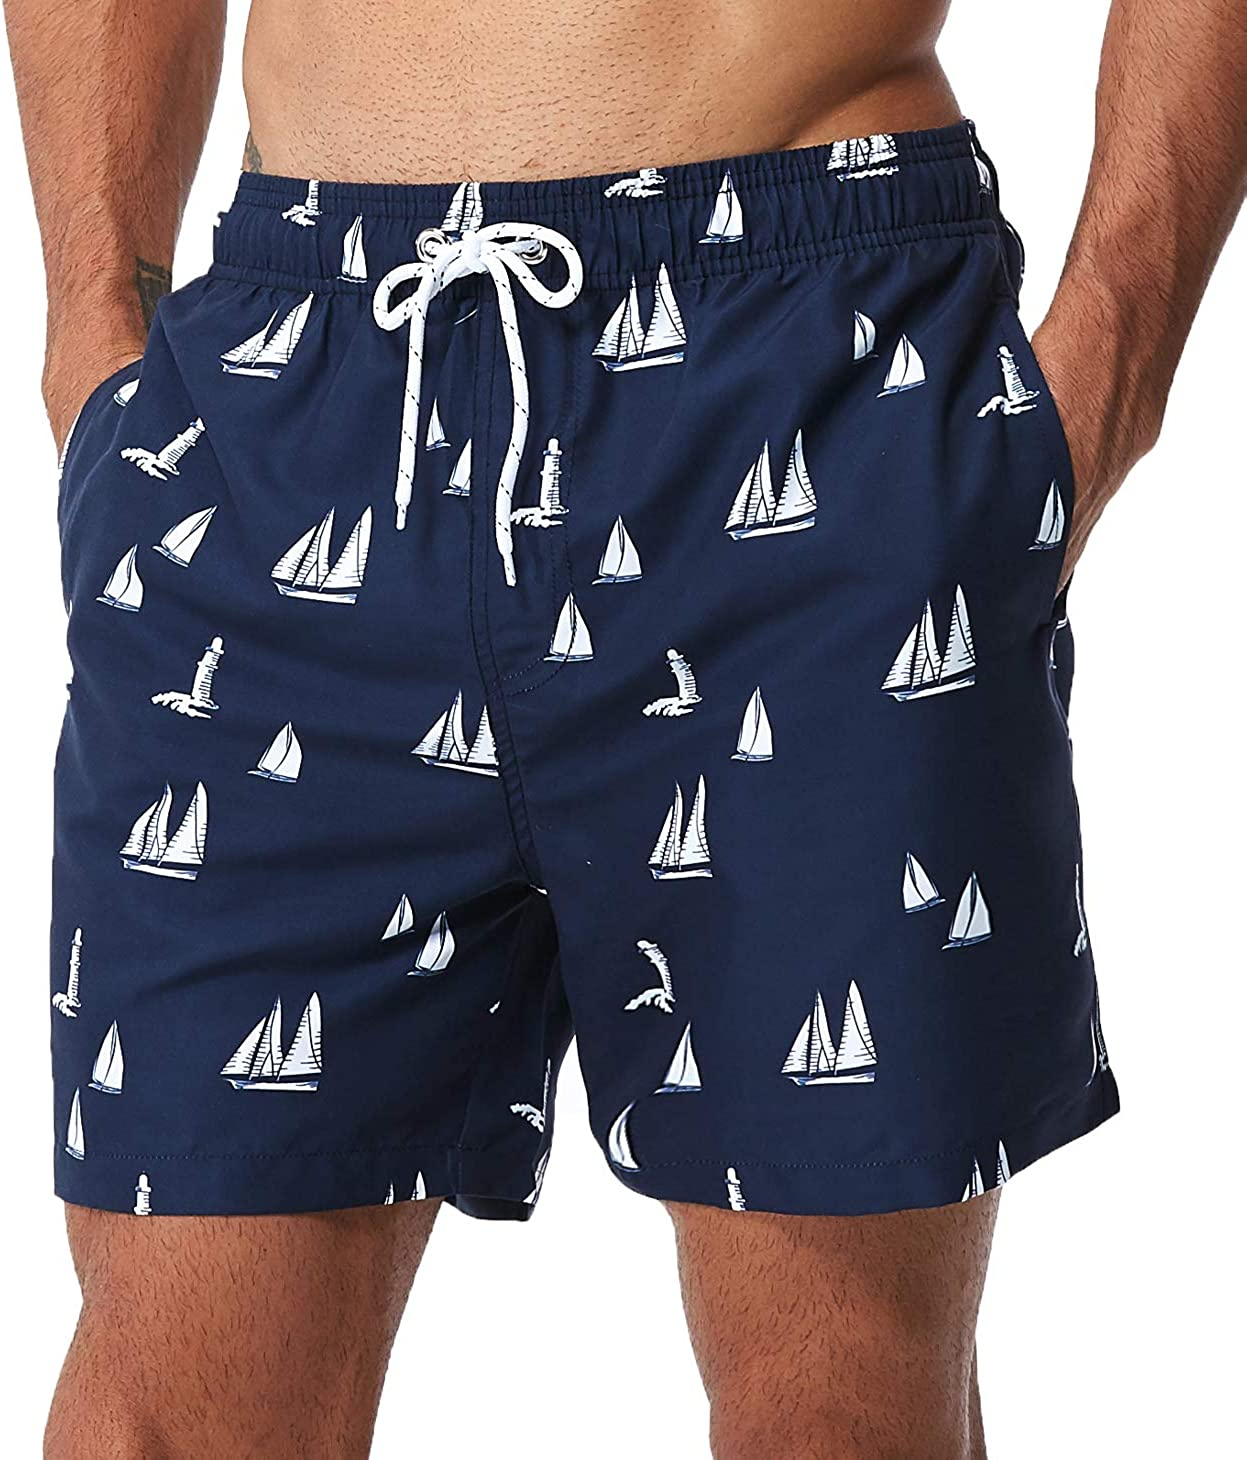 SILKWORLD Mens Swim Trunks Waterproof Bathing Suit Quick Dry Shorts with Pockets,6a/_Pink Flamingo,Large